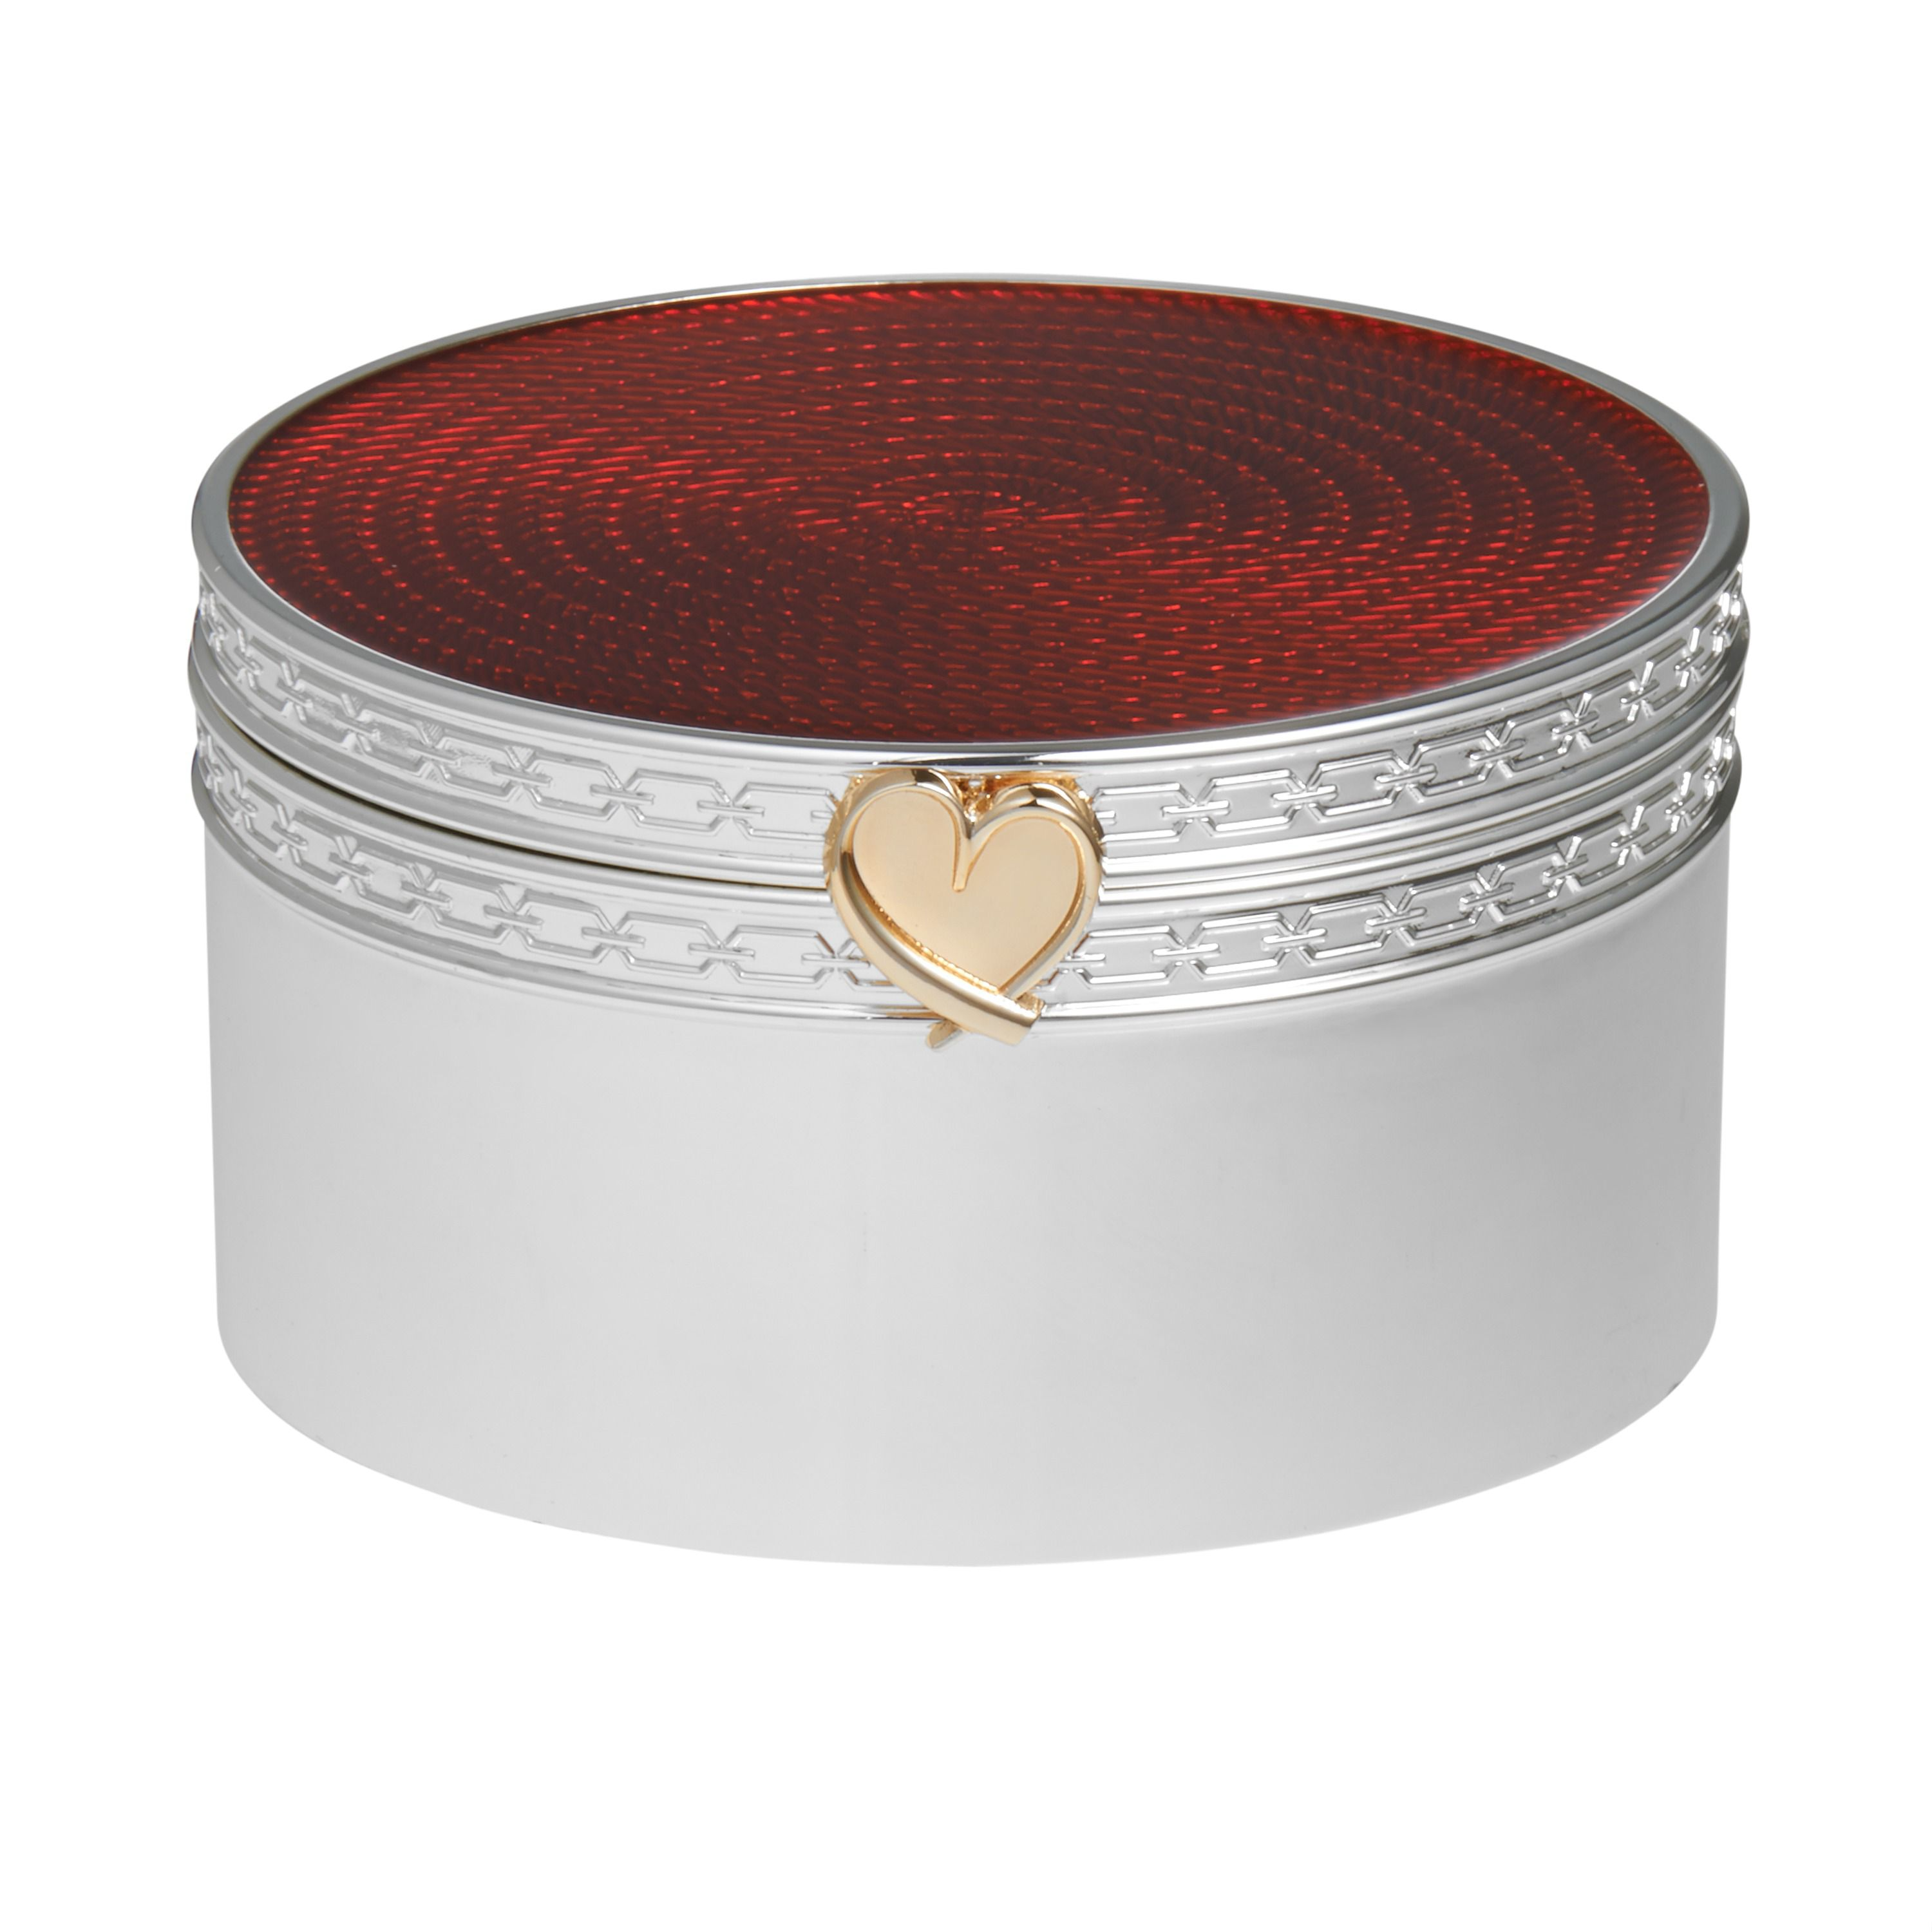 Wedgwood Treasures with love red heart treasure box, N/A